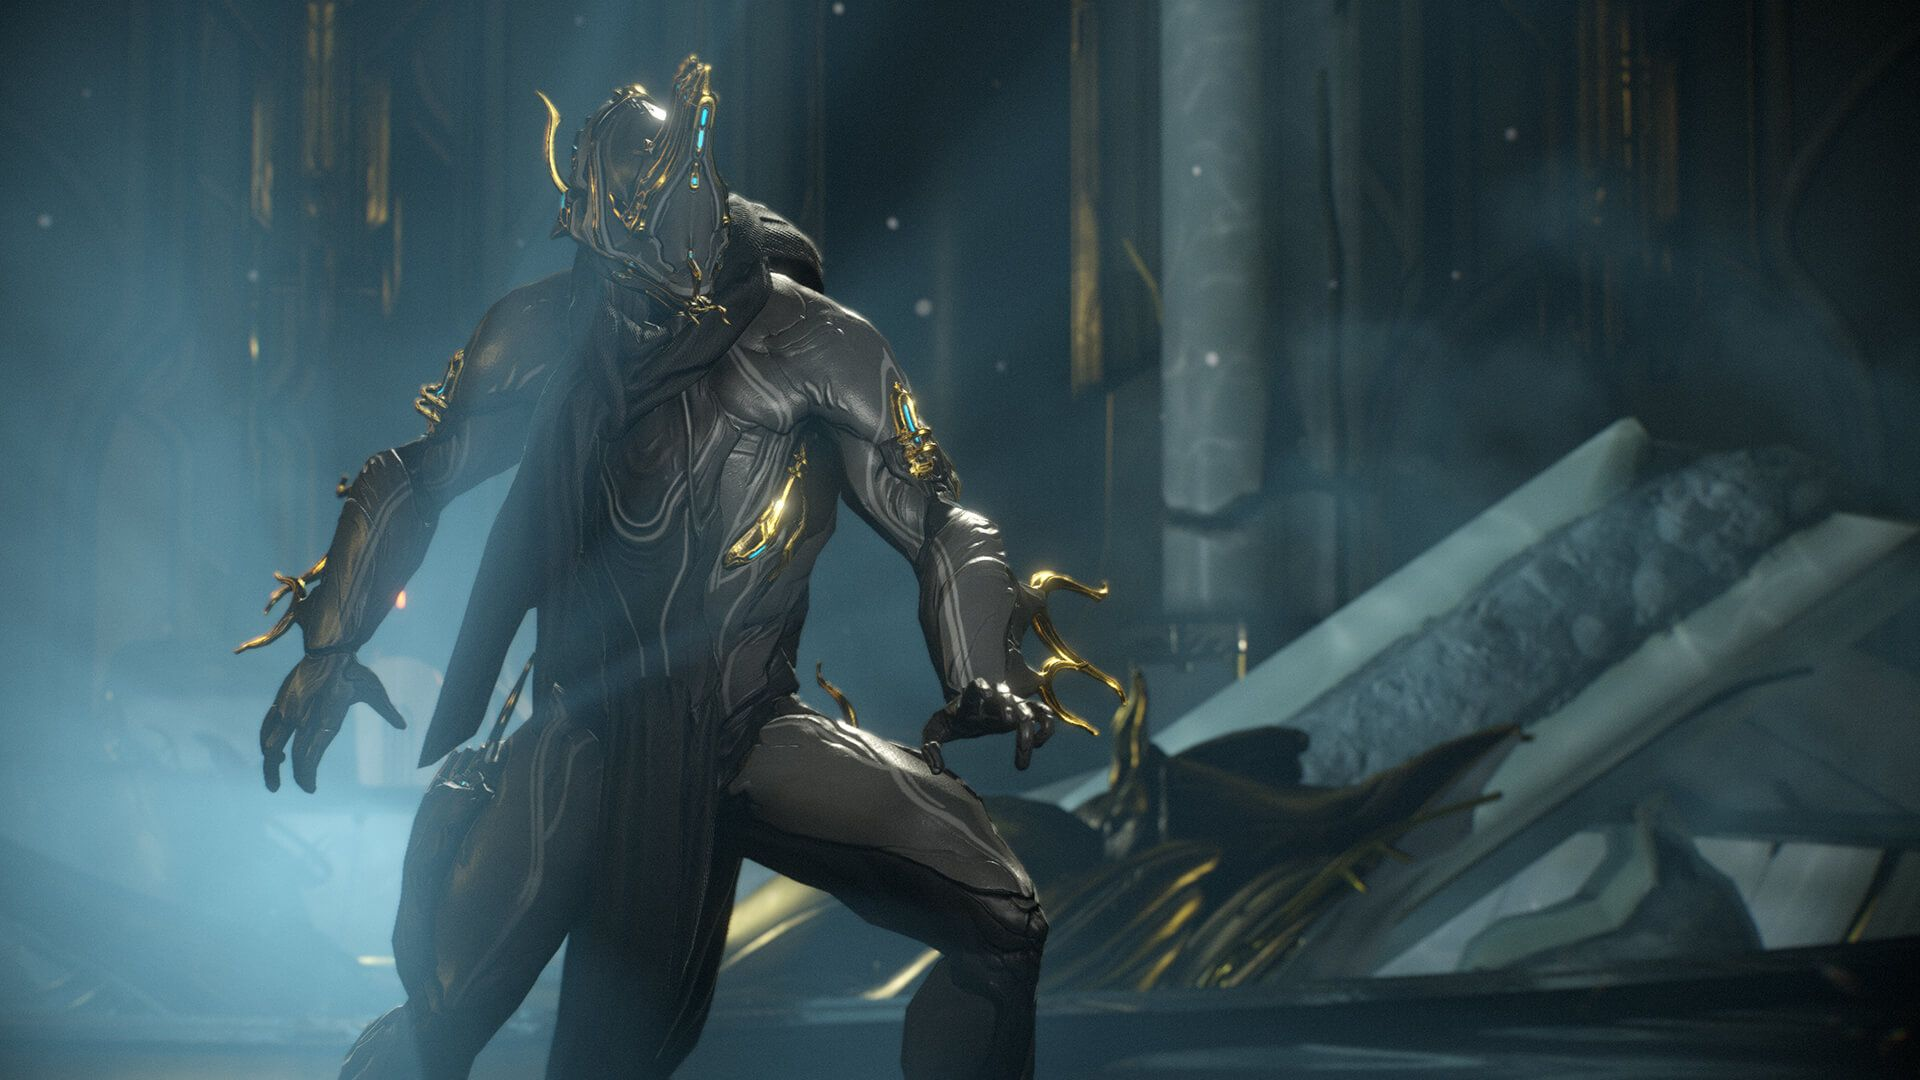 Warframe: The Sacrifice – launch date and user interface changes